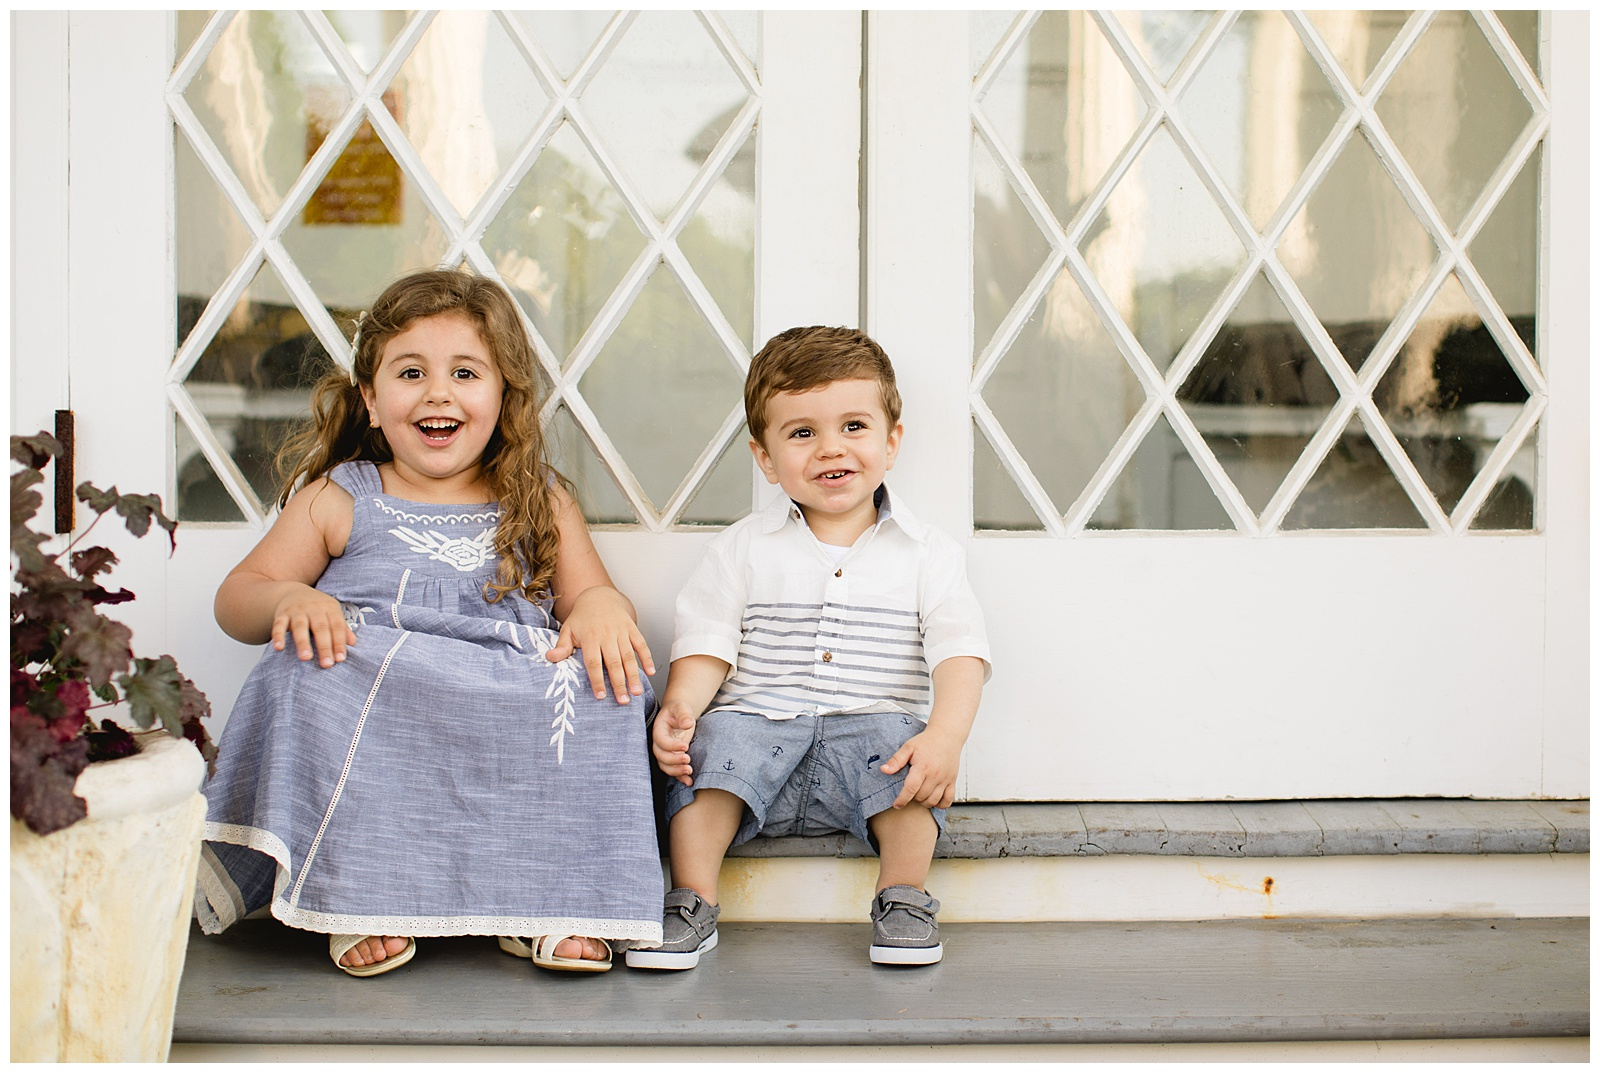 morristown family photography, new jersey family photography,